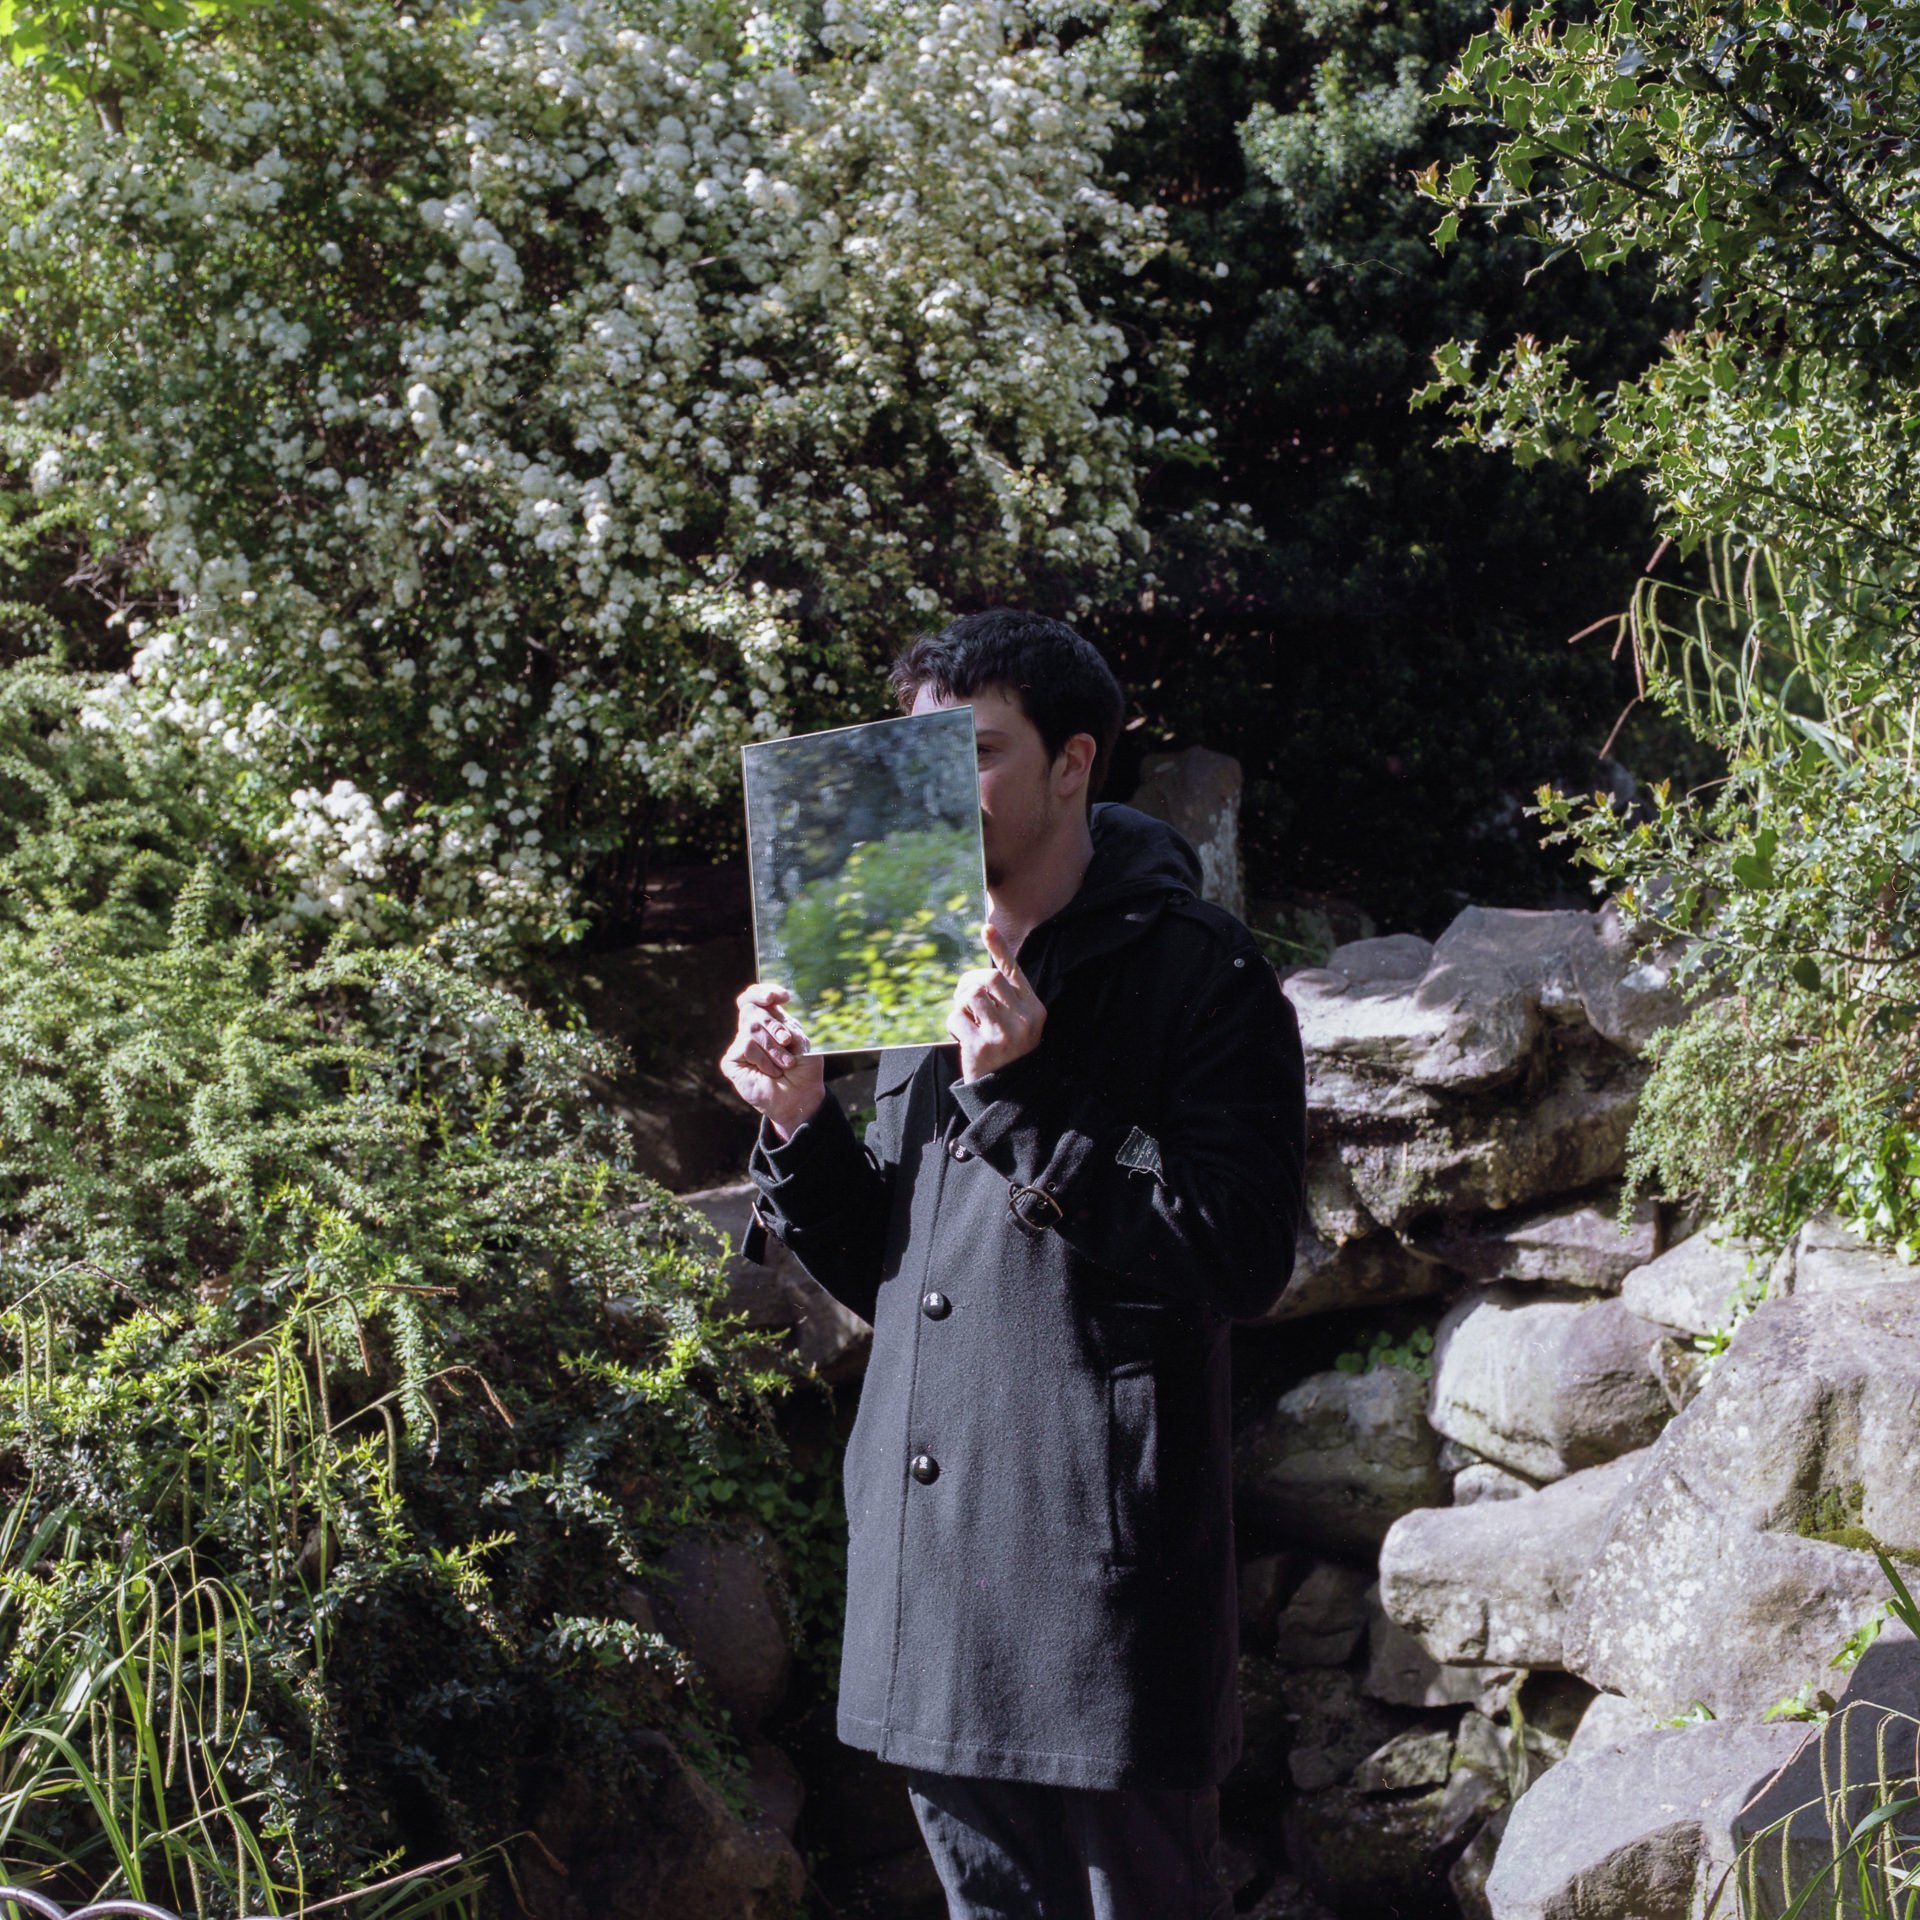 Edward W stood in the middle of a park with rocks and trees, holding a square mirror in front of his face that reflects the plant life around him